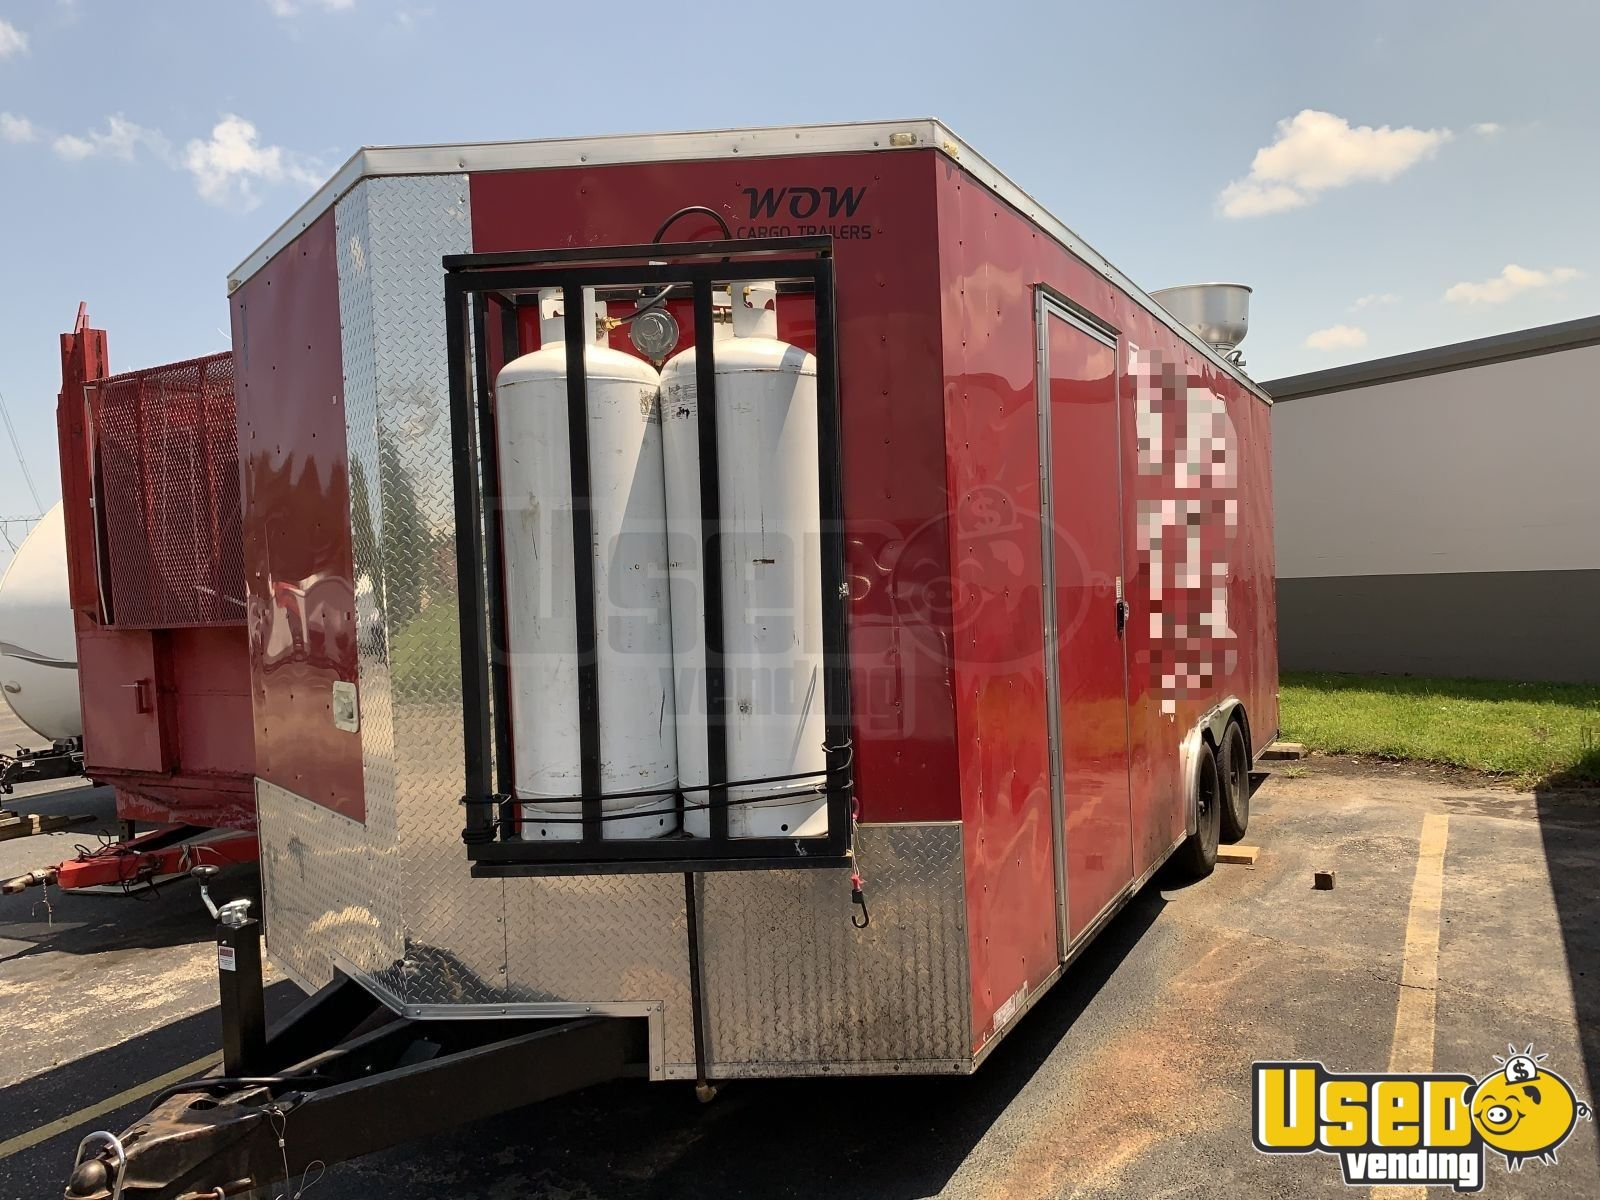 2018 - 8 5' x 20' Turnkey Mobile Food Concession Trailer for Sale in  Tennessee!